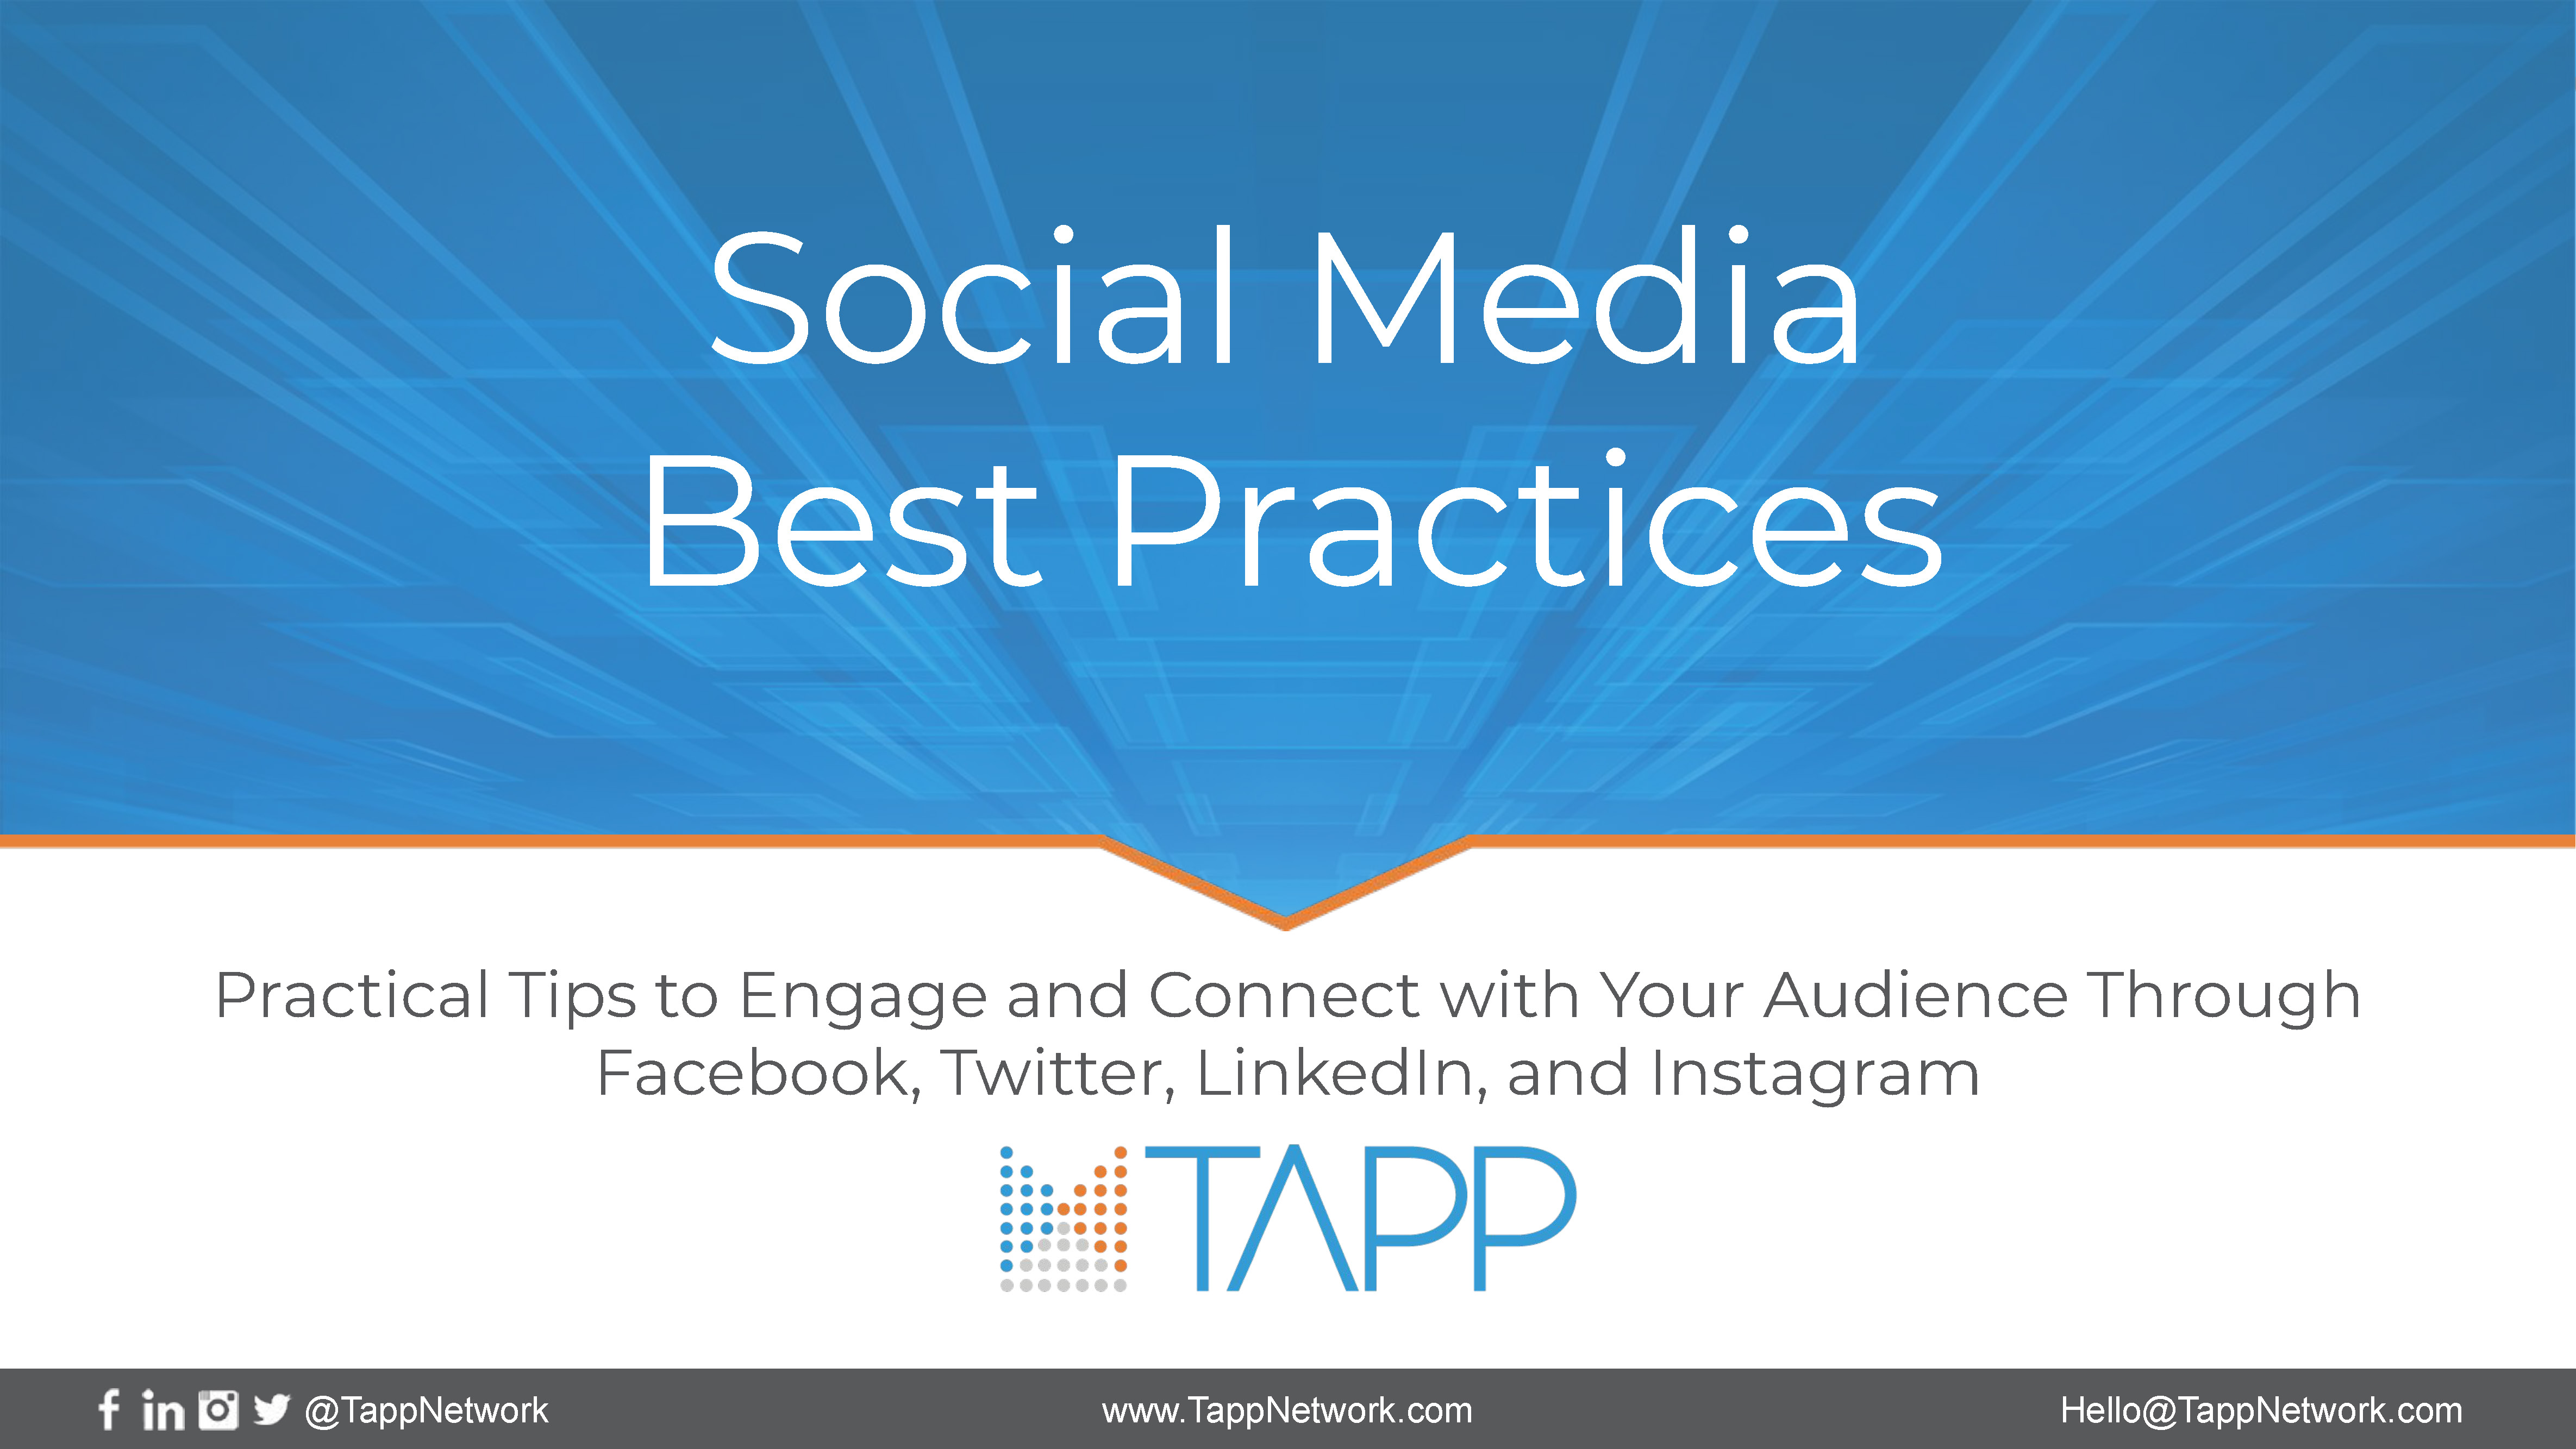 Social Media Best Practices cover image